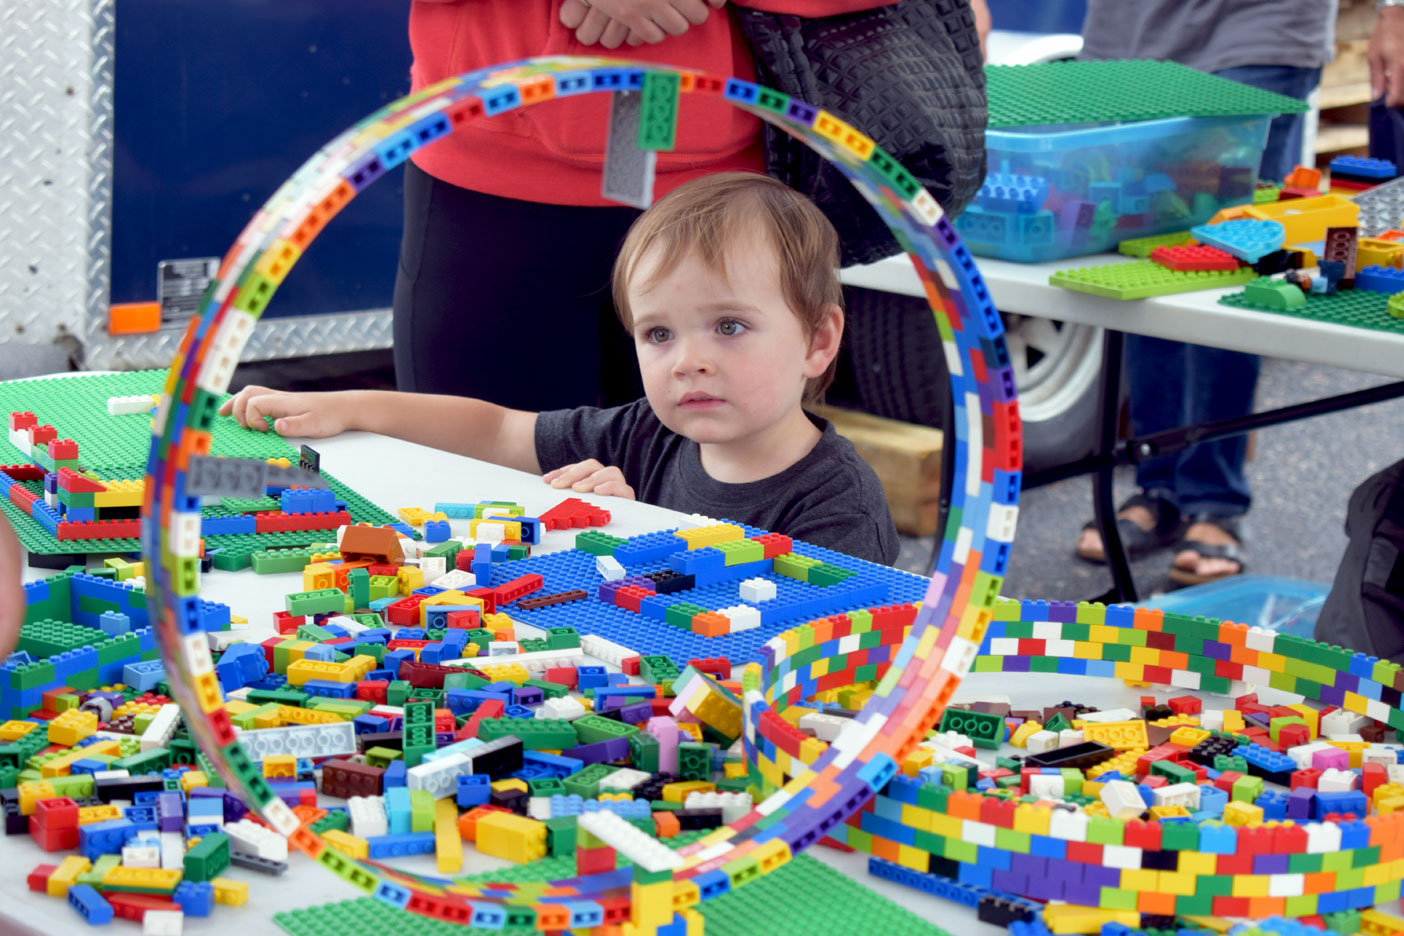 Like so many other cute kids, Lucas Hearn had a blast playing at the Lego table.